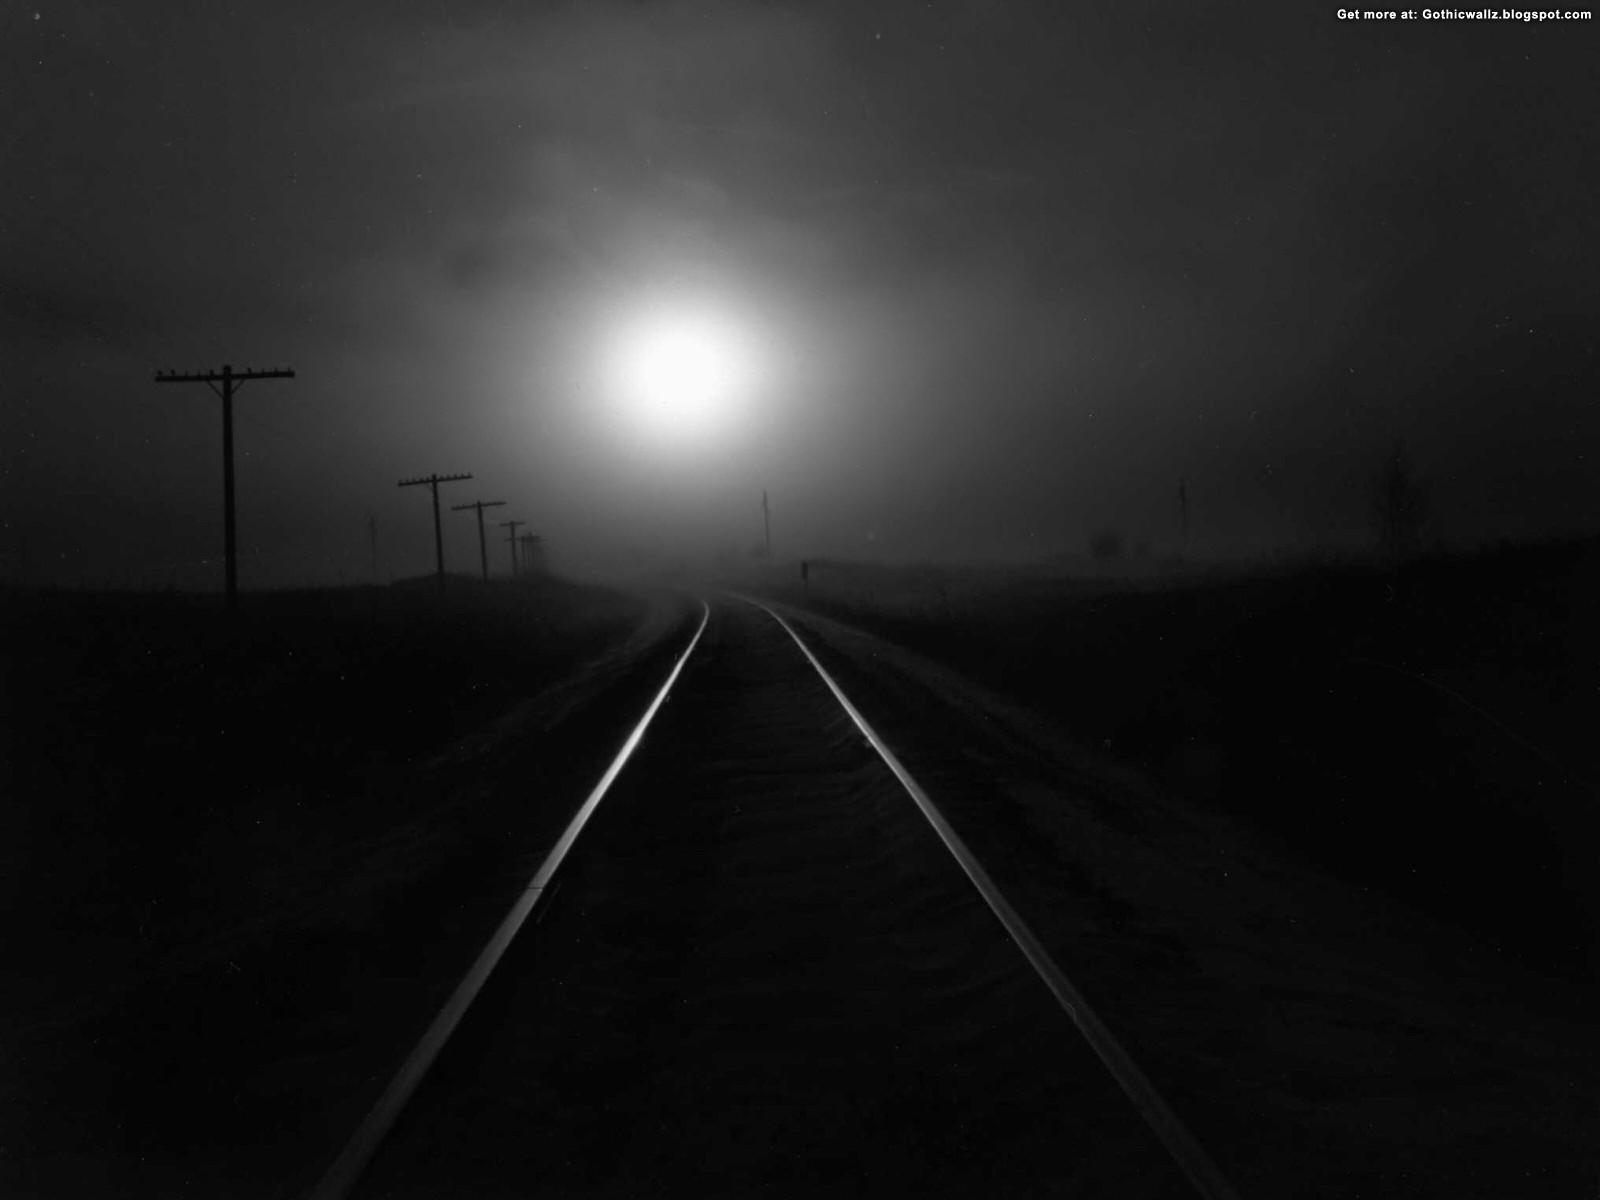 Dark Railway | Gothic Wallpaper Download